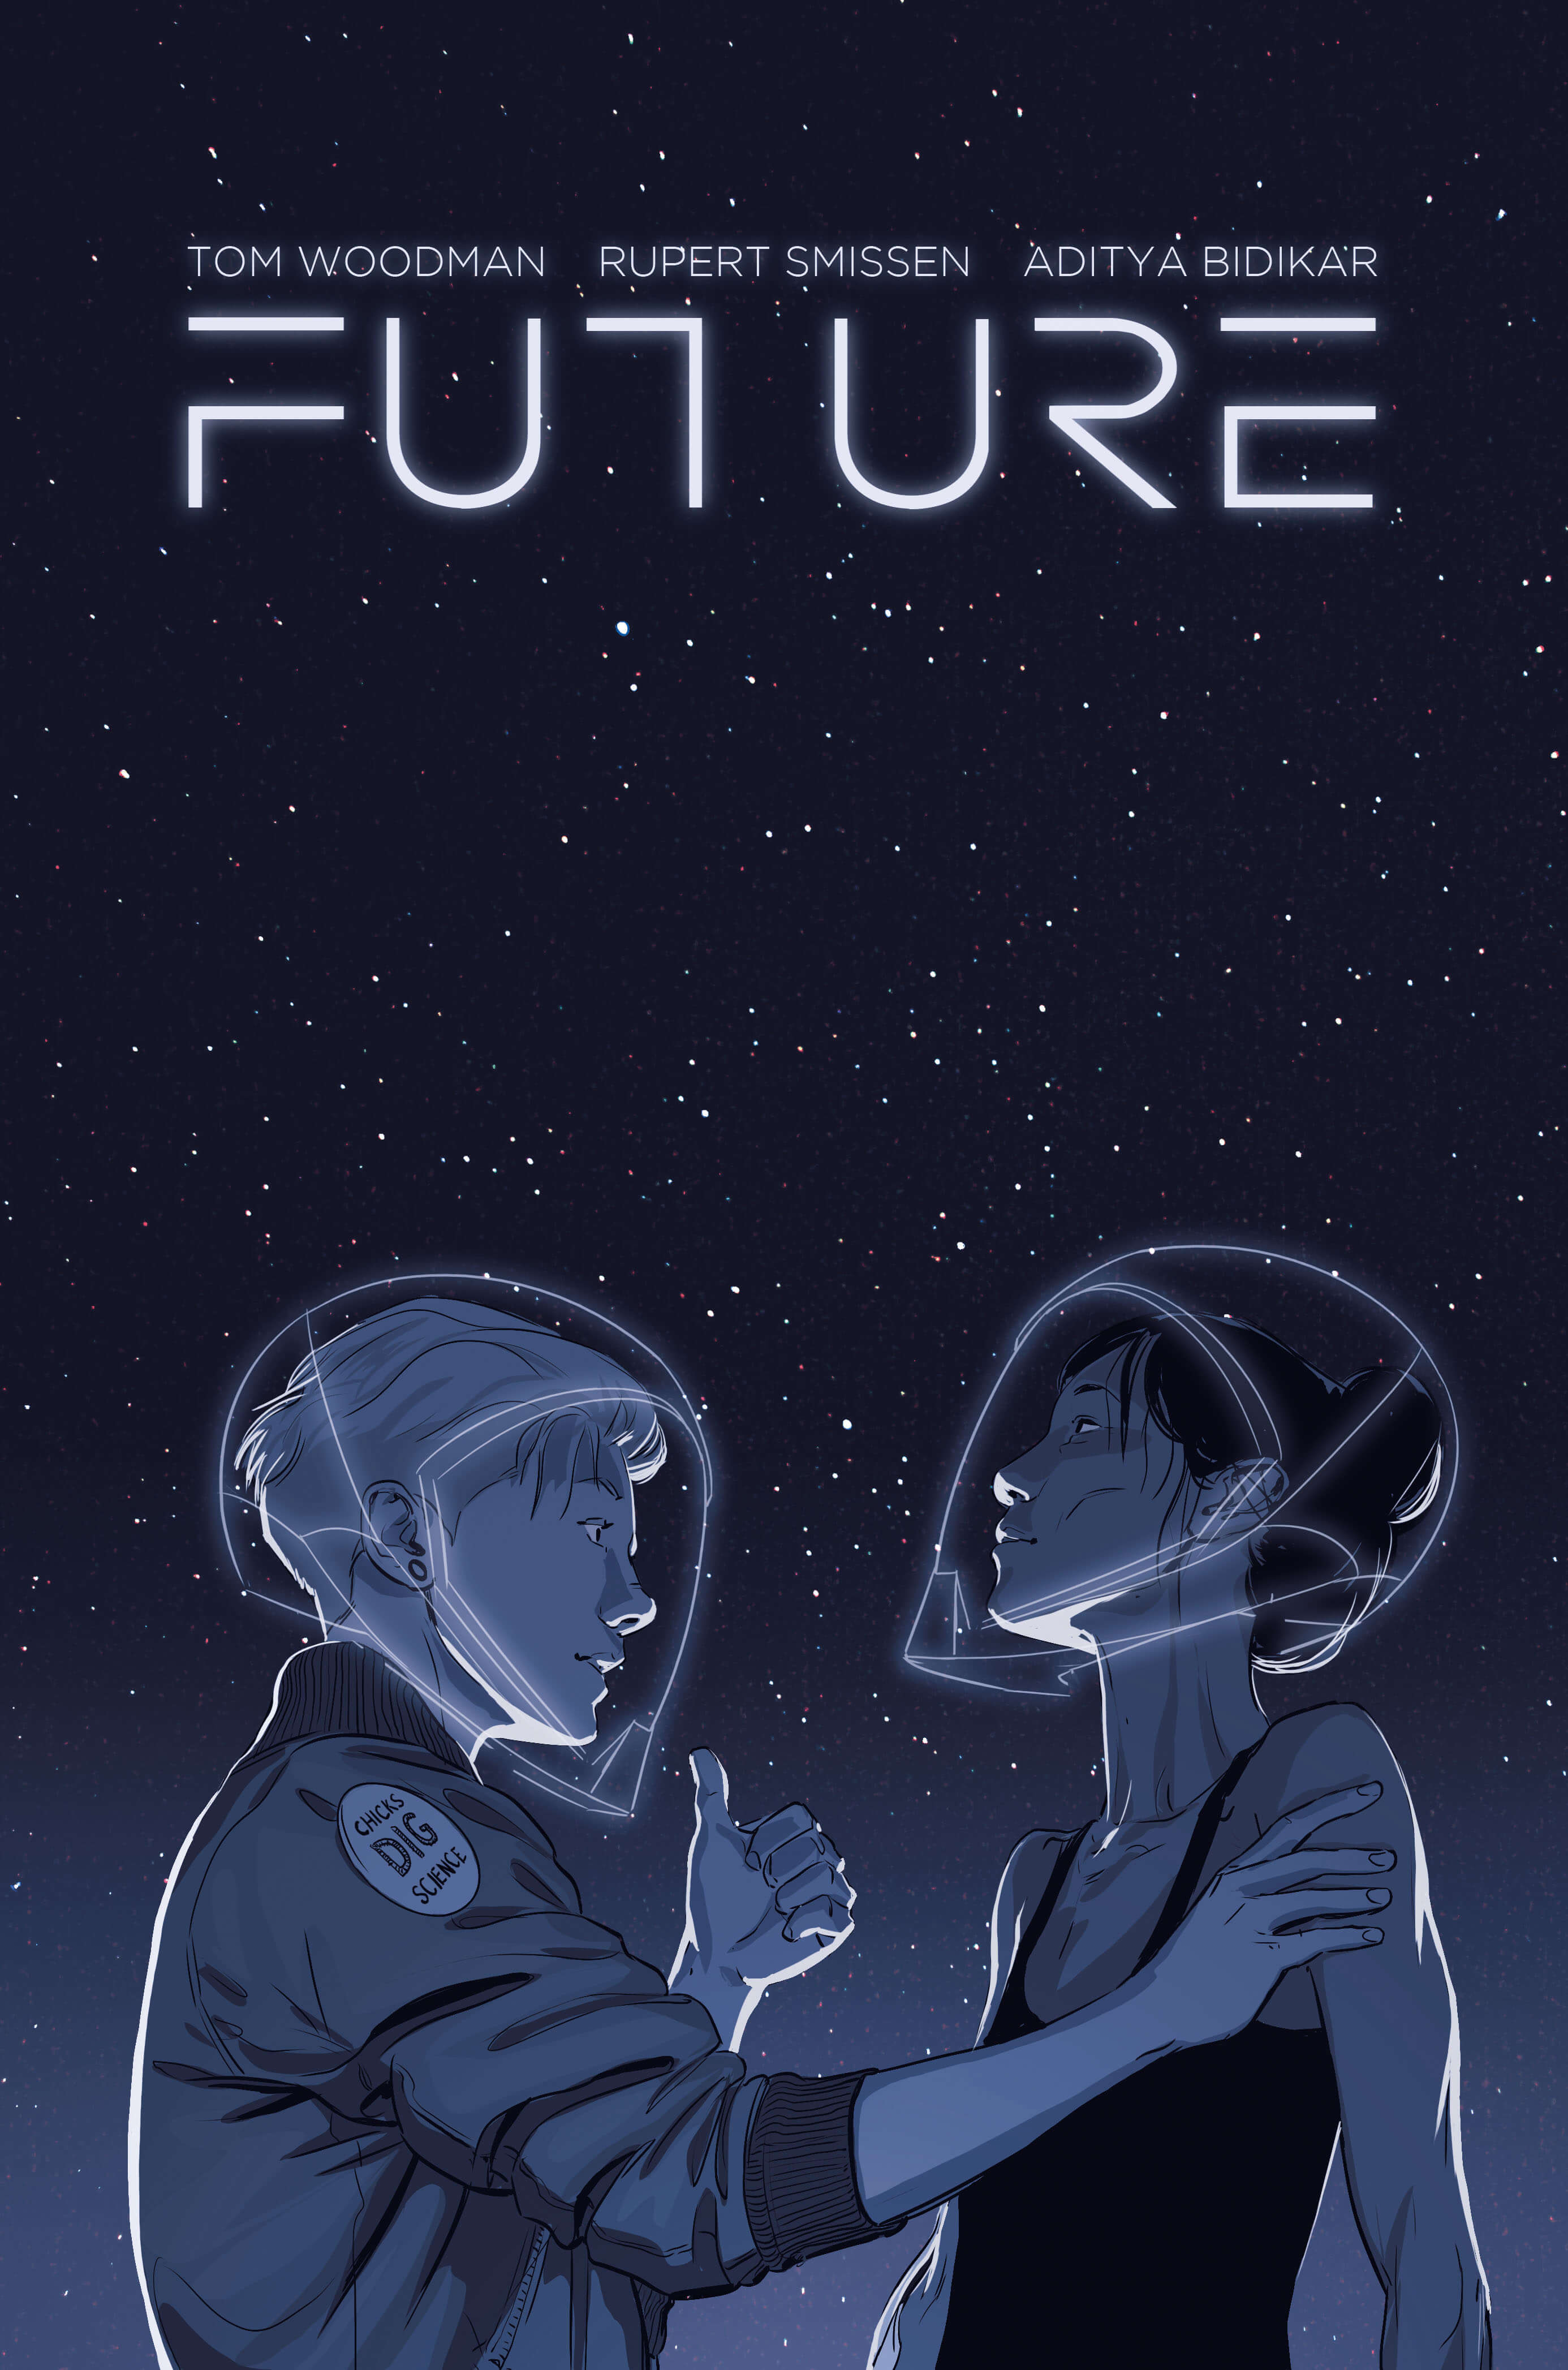 Cover image for science fiction graphic novel space time travel